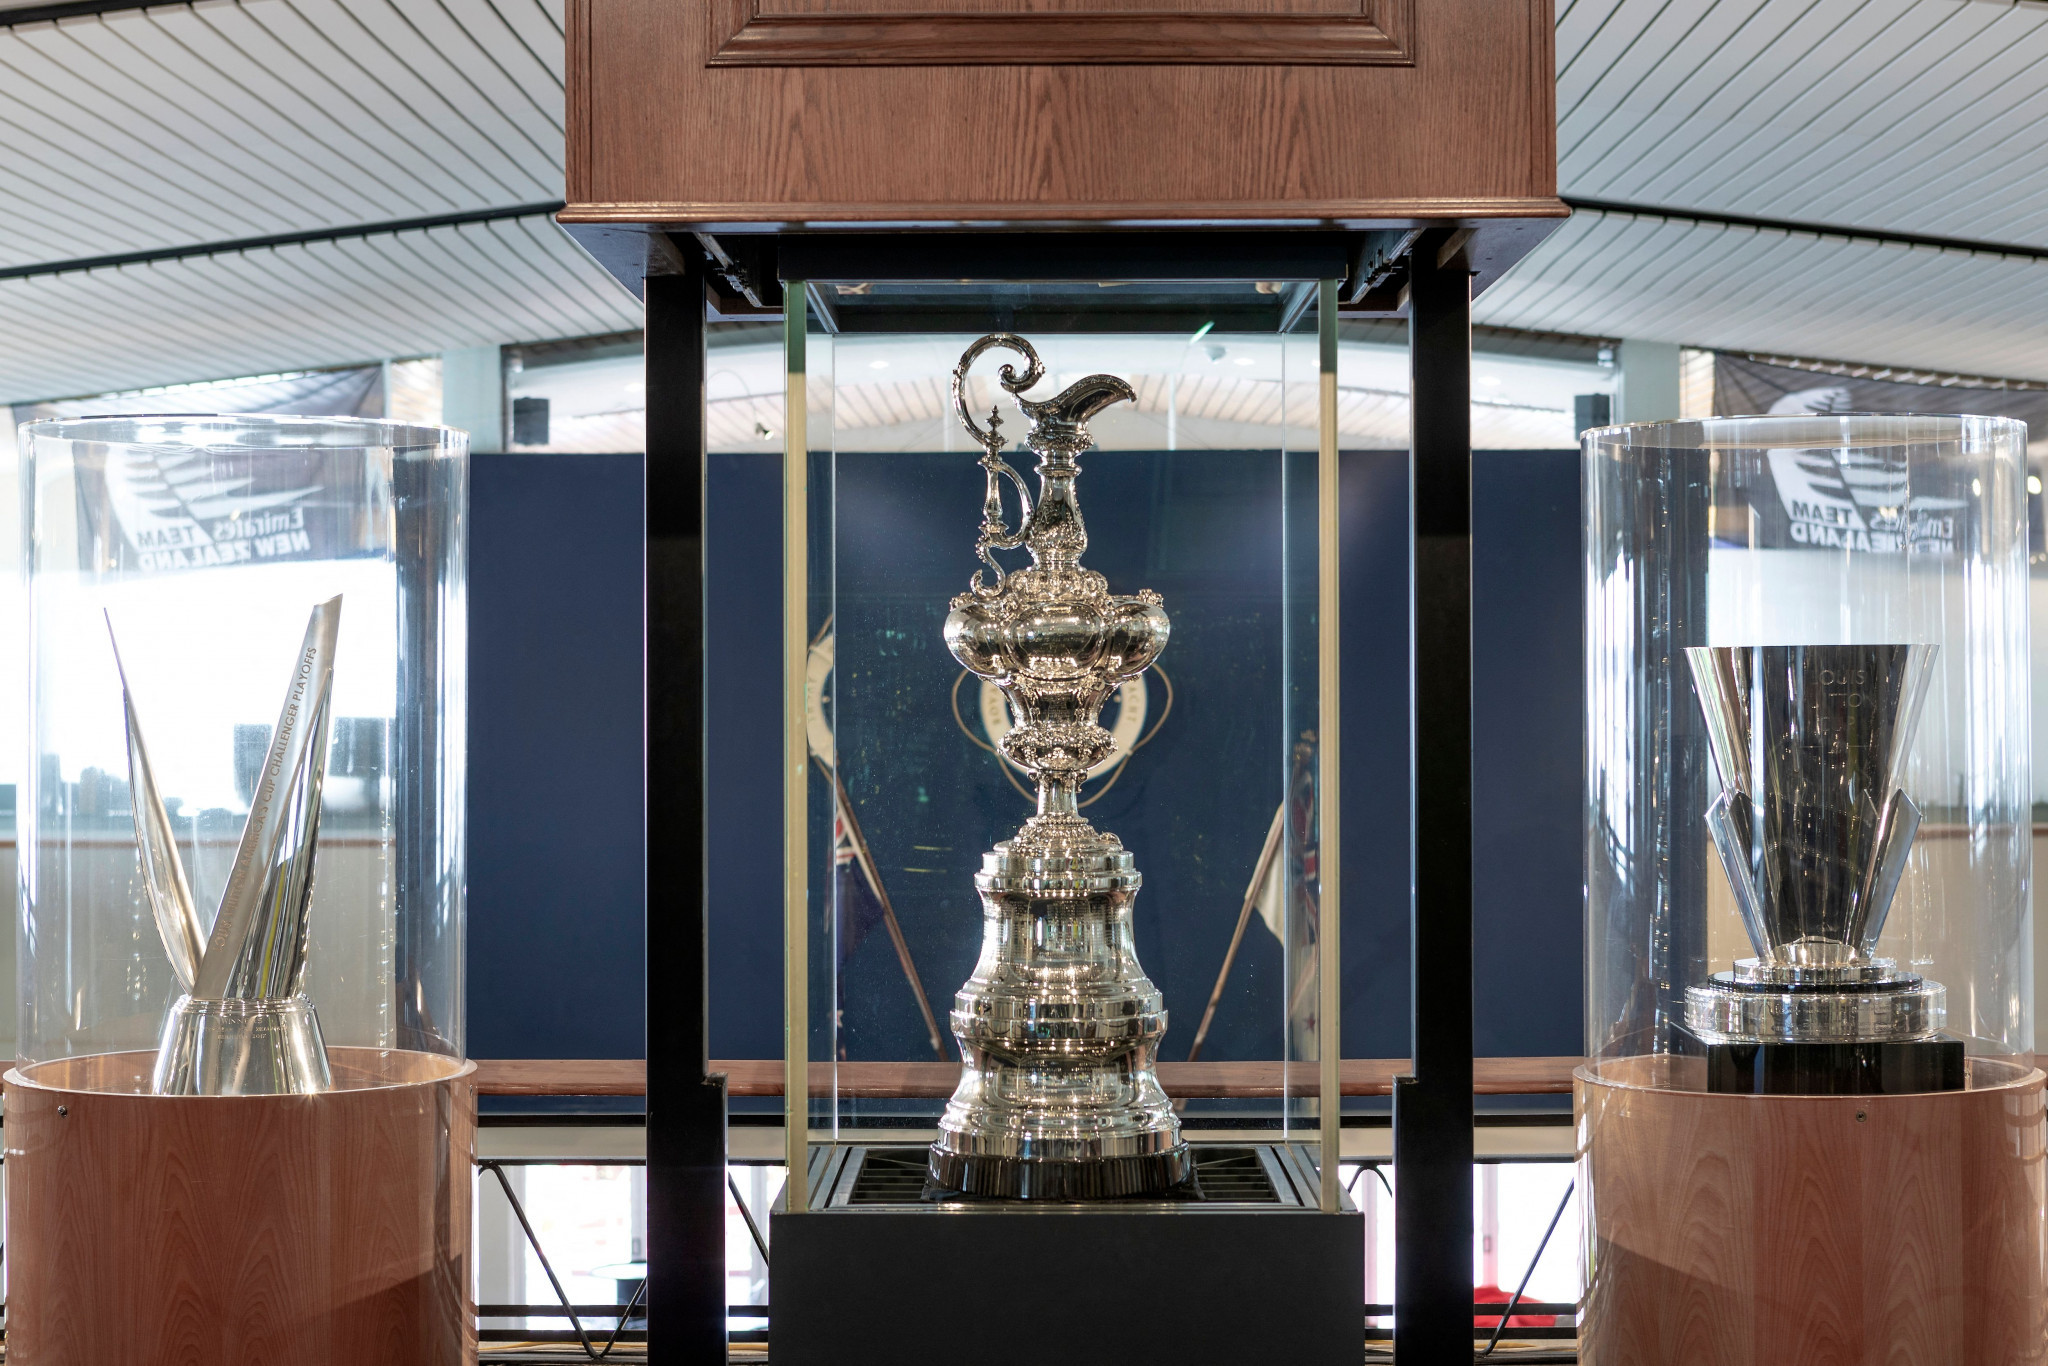 Valencia pulls out of bidding process for the next America's Cup